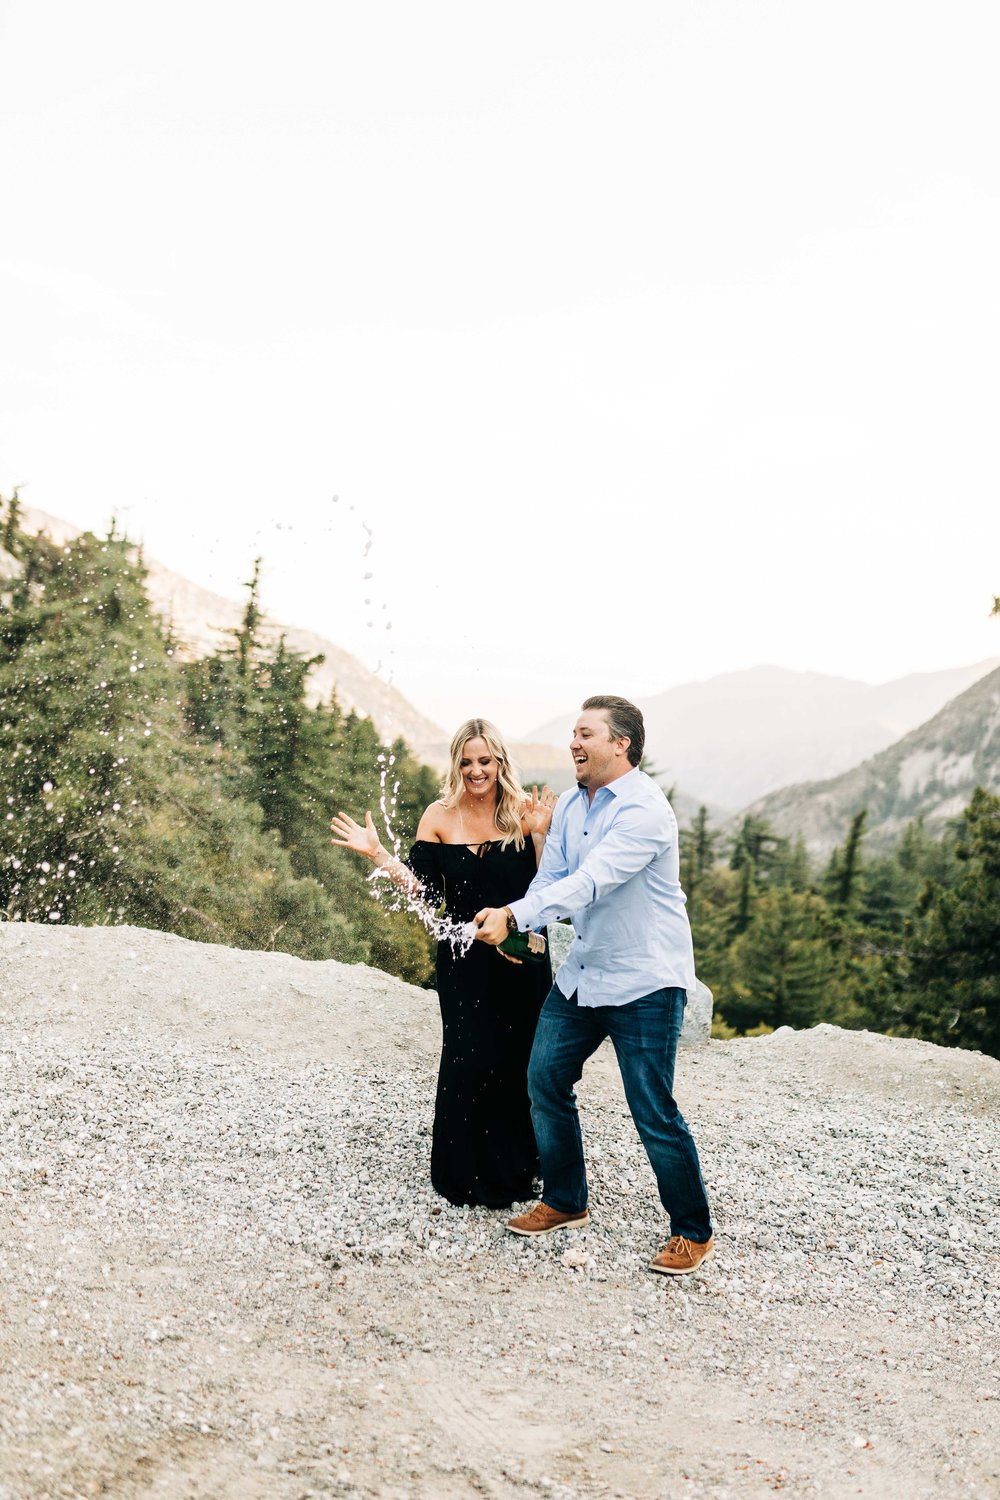 Rachael&Keith-Mount-Baldy-Engagement-Photos-Clarisse-Rae-Southern-California-Wedding-Photographer_54.jpg